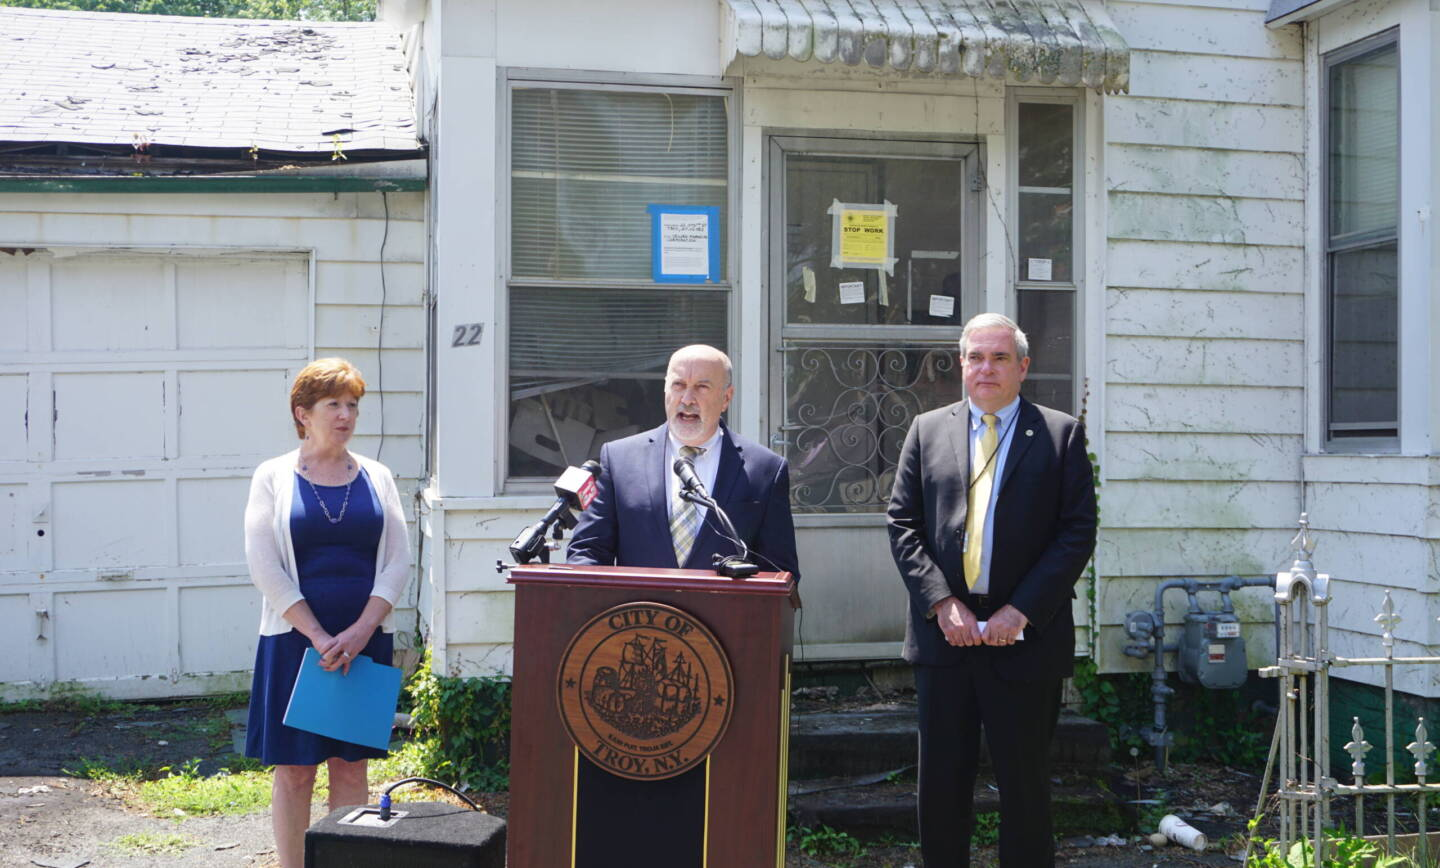 Albany, Schenectady, & Troy Announce Coordinated Zombie Property Enforcement Action